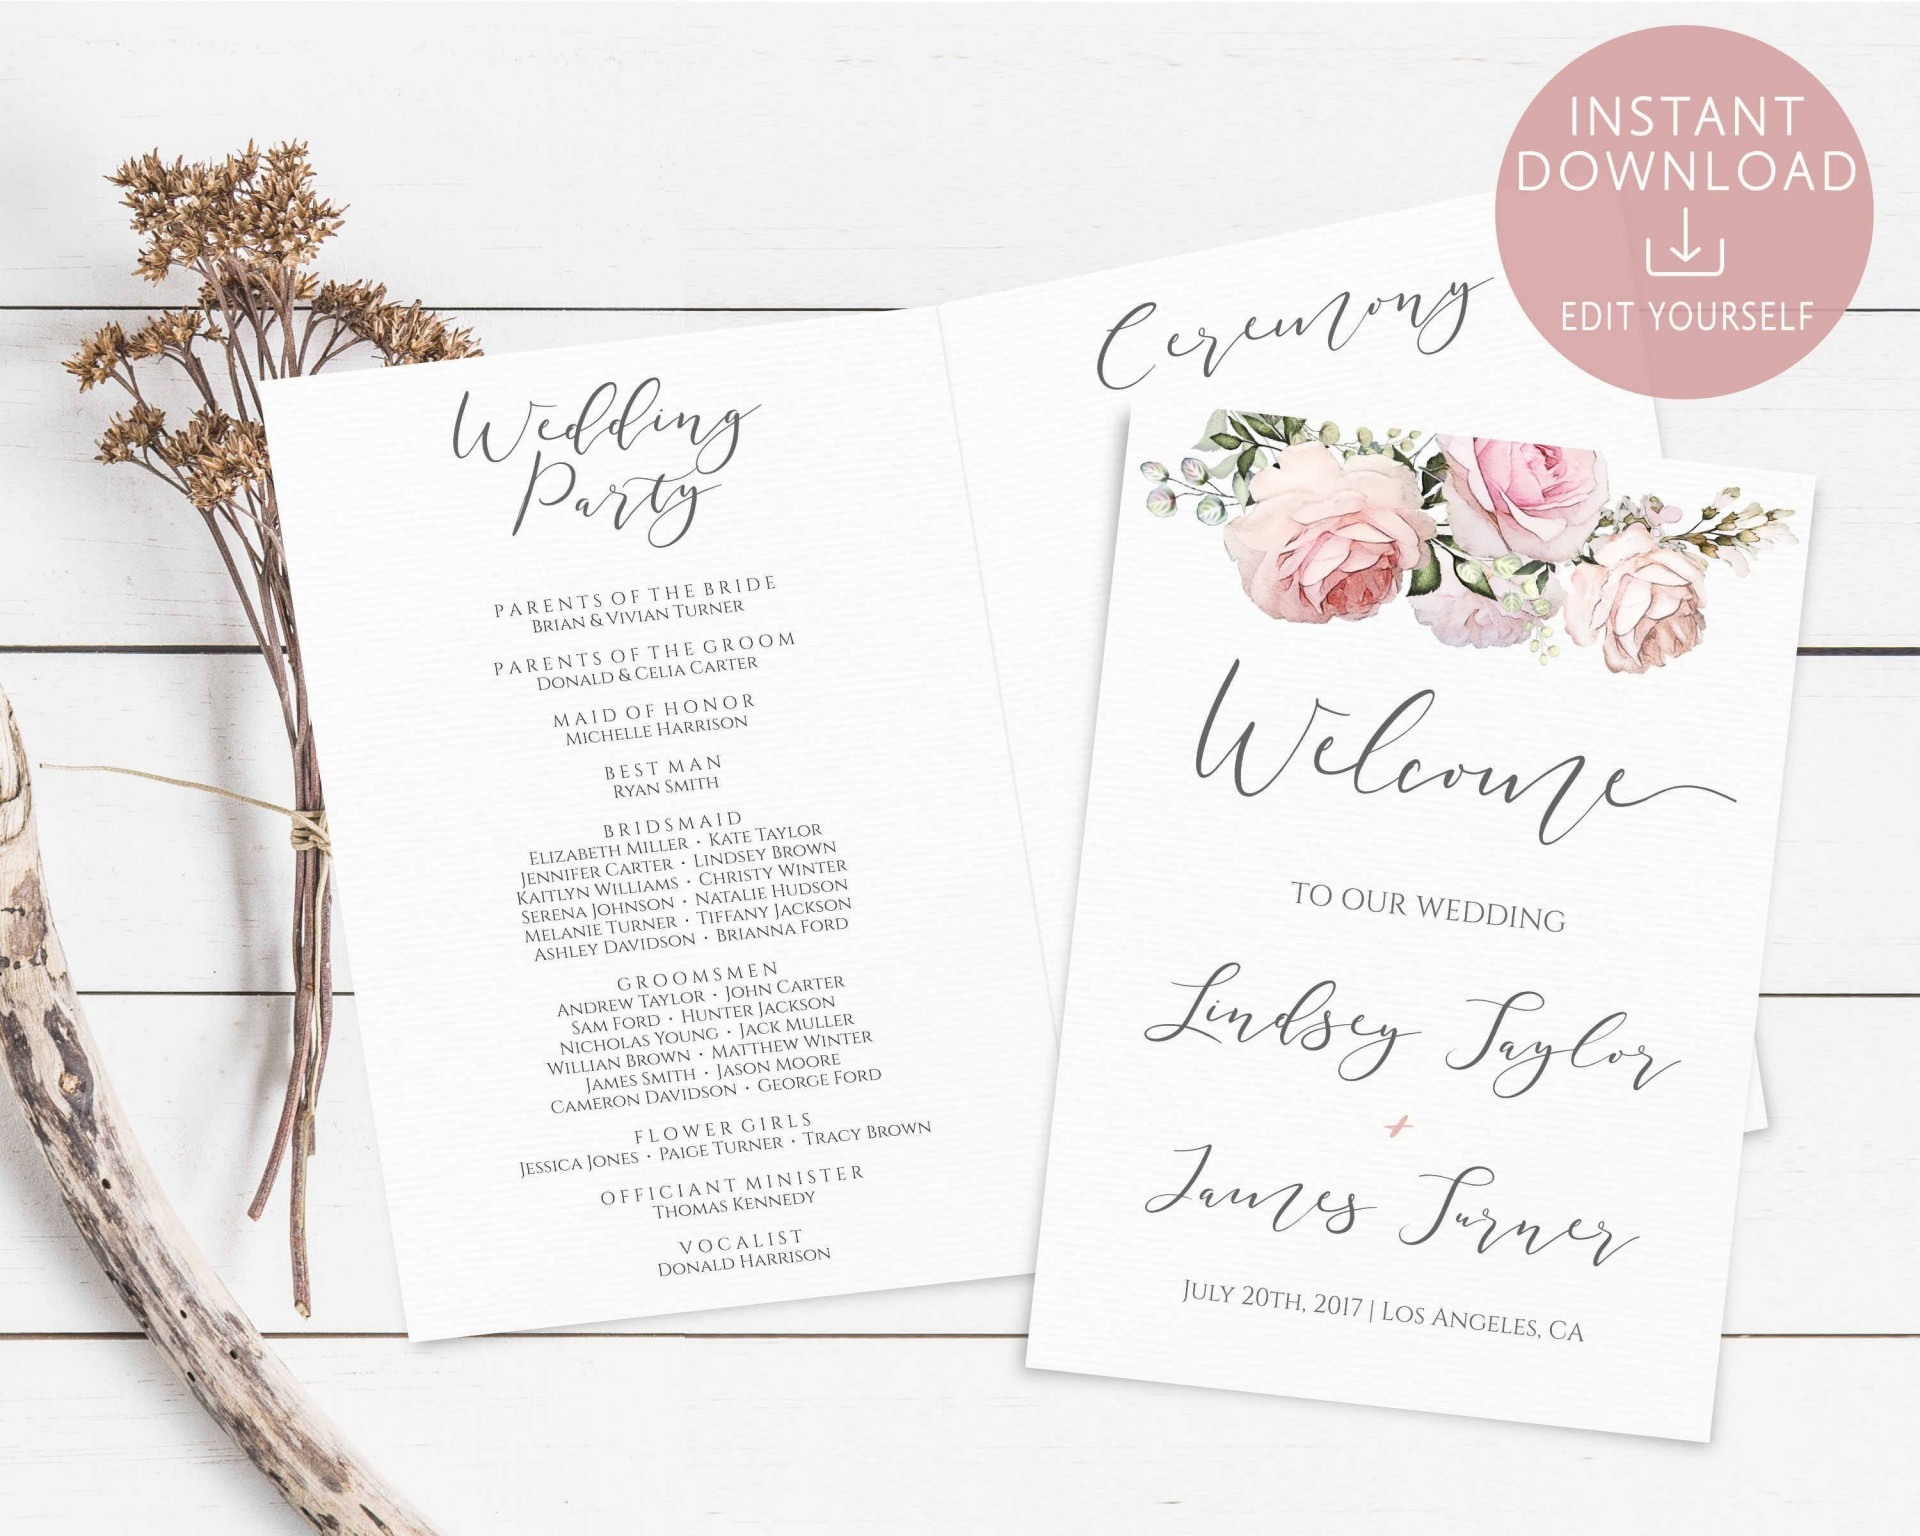 002 Magnificent Wedding Order Of Service Template Pdf Highest Quality 1920